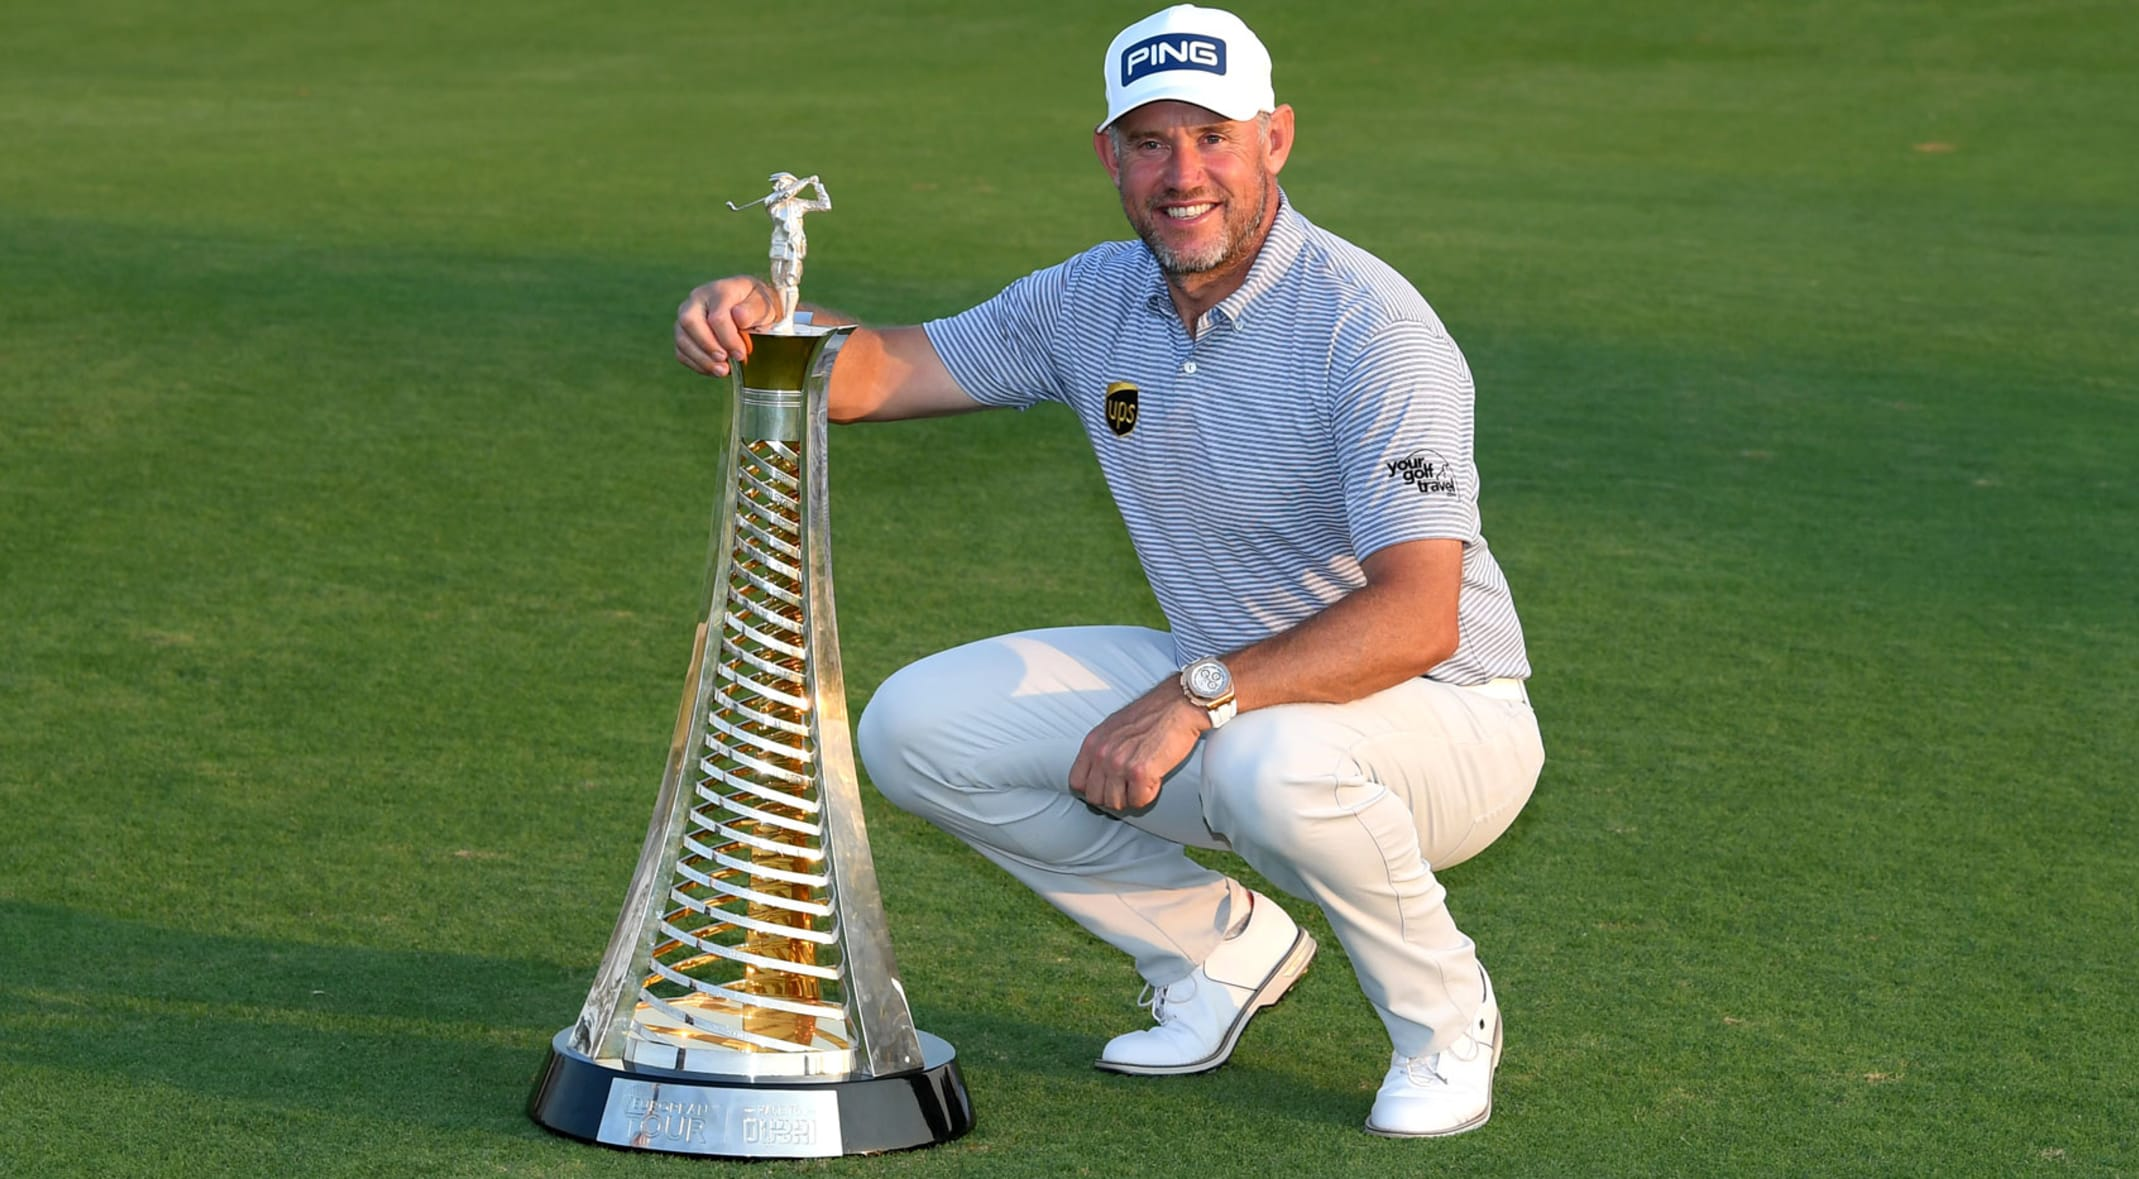 Lee Westwood wins Race to Dubai after dramatic DP World Tour Championship finish